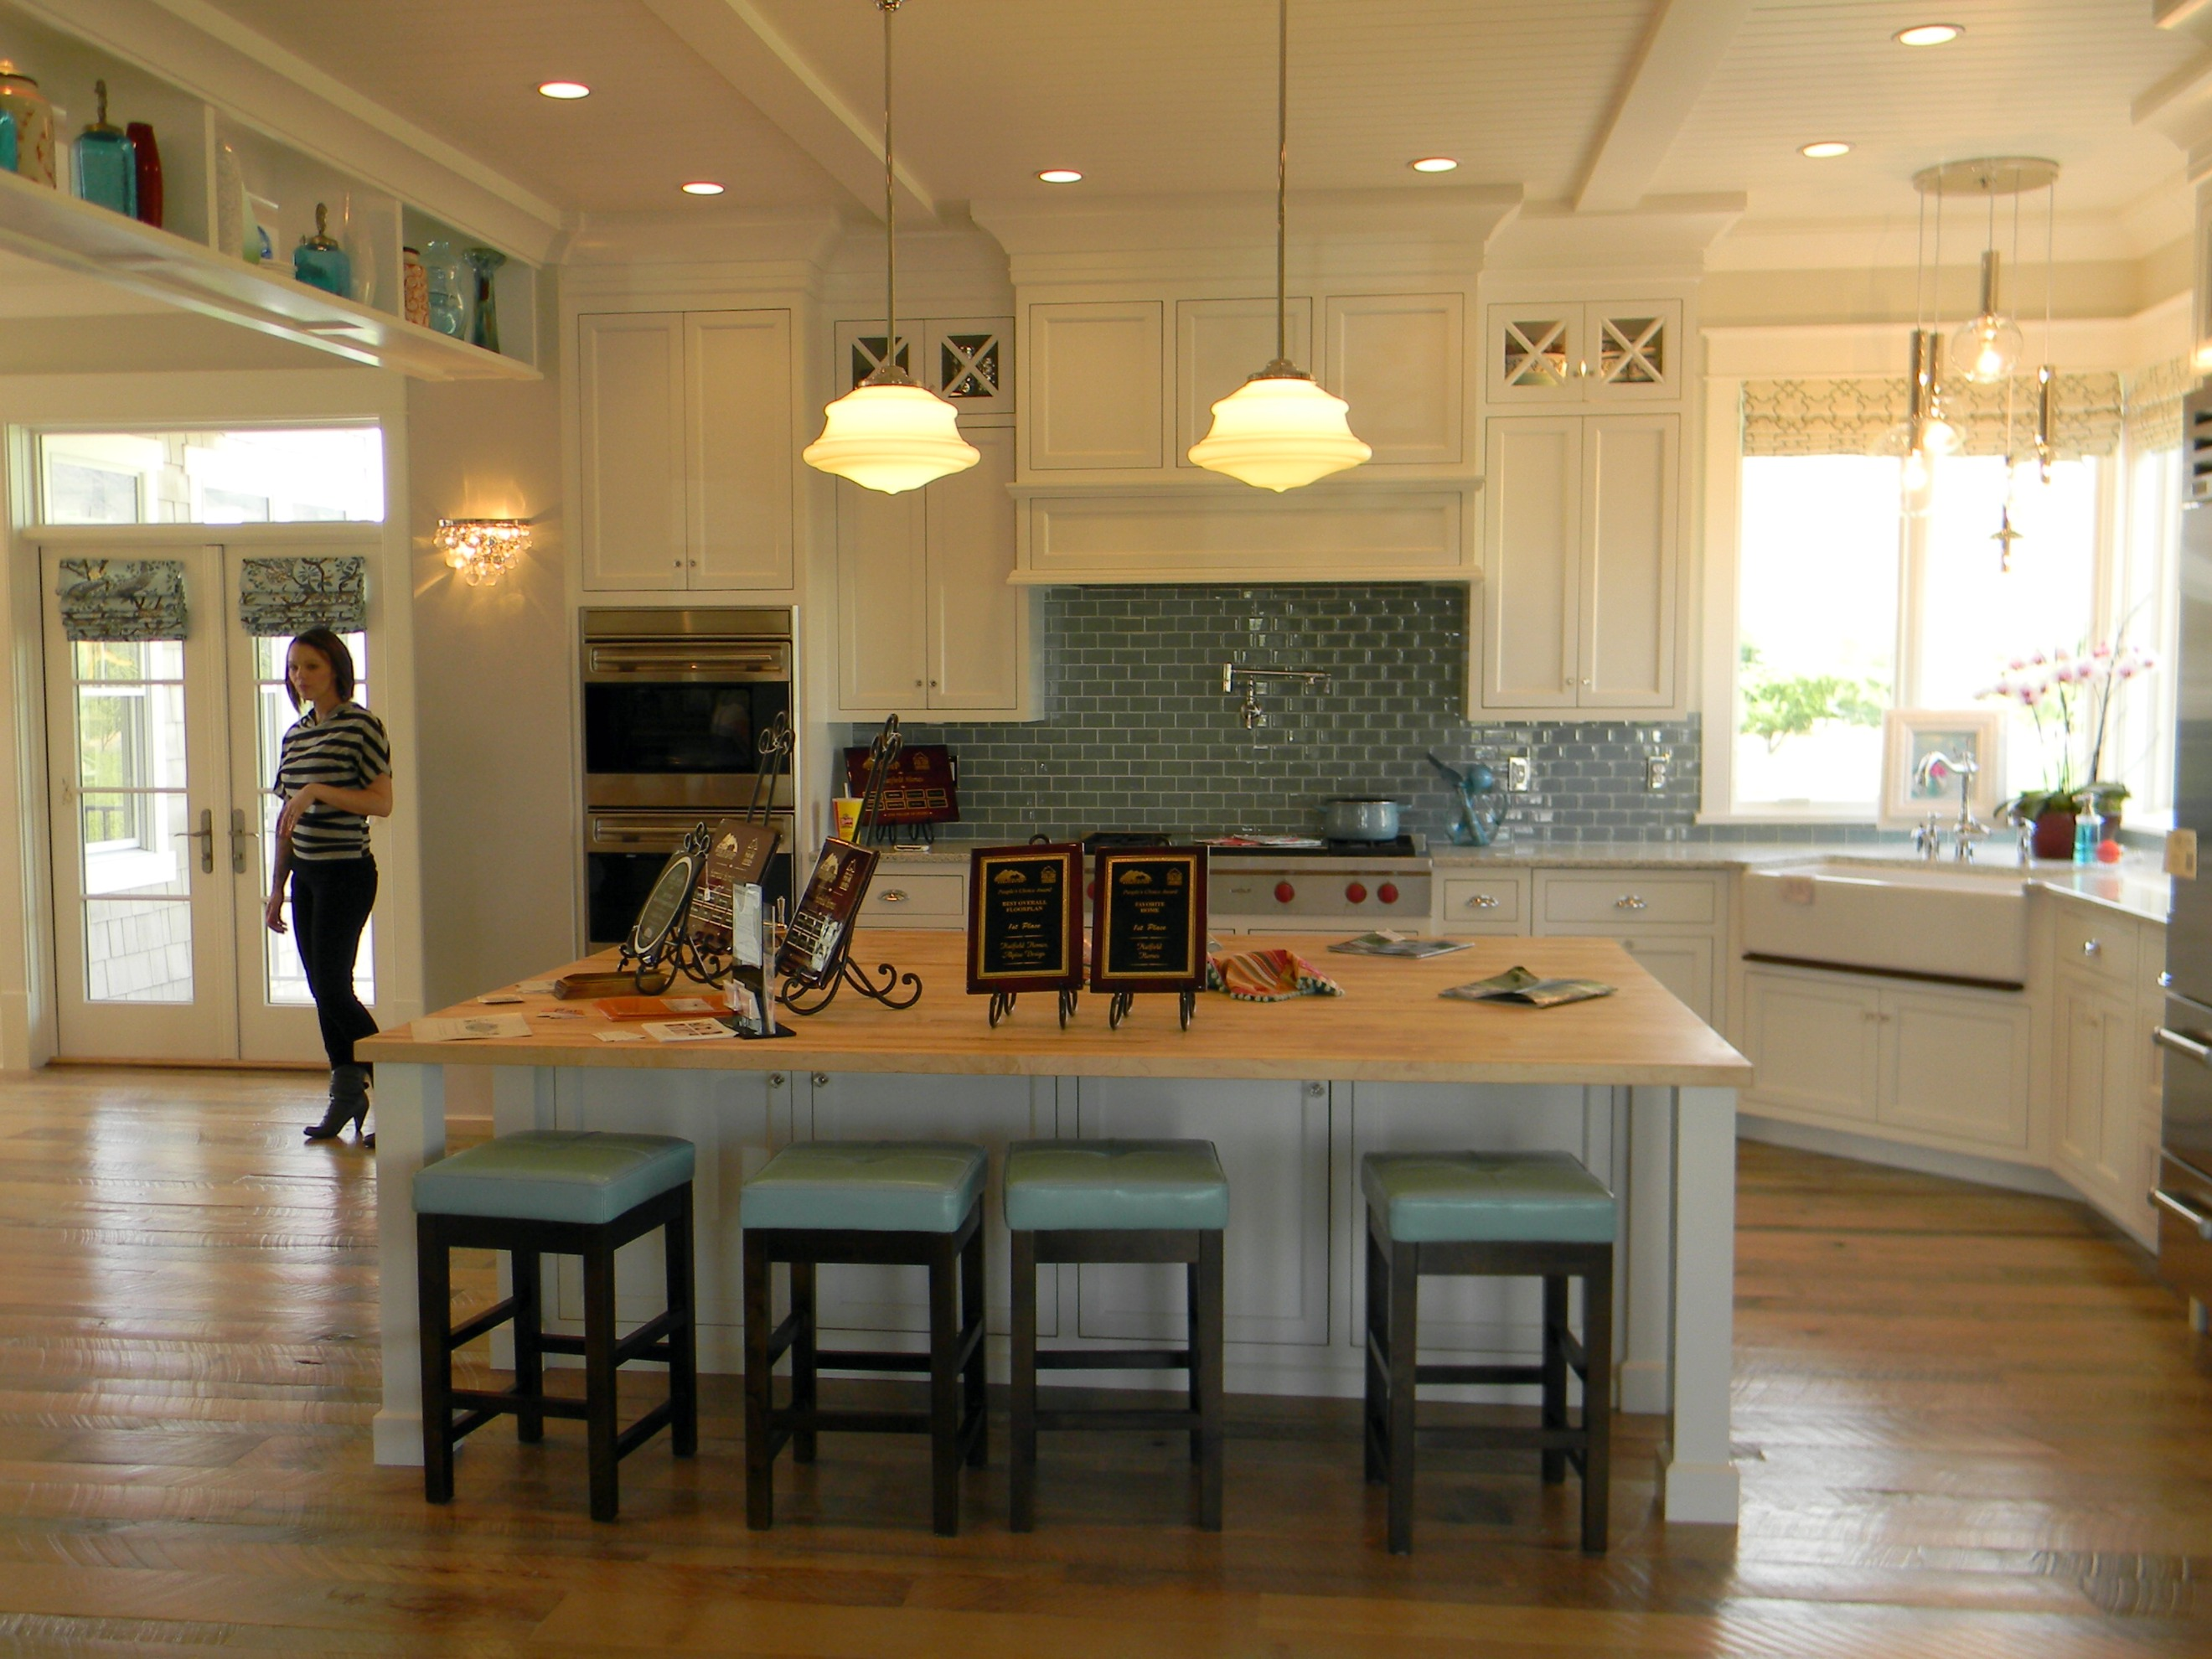 More paint colors from the uv parade of homes my favorite home - My Favorite Home In The Parade Of Homes Organize And Decorate On Parade Of Homes 2016